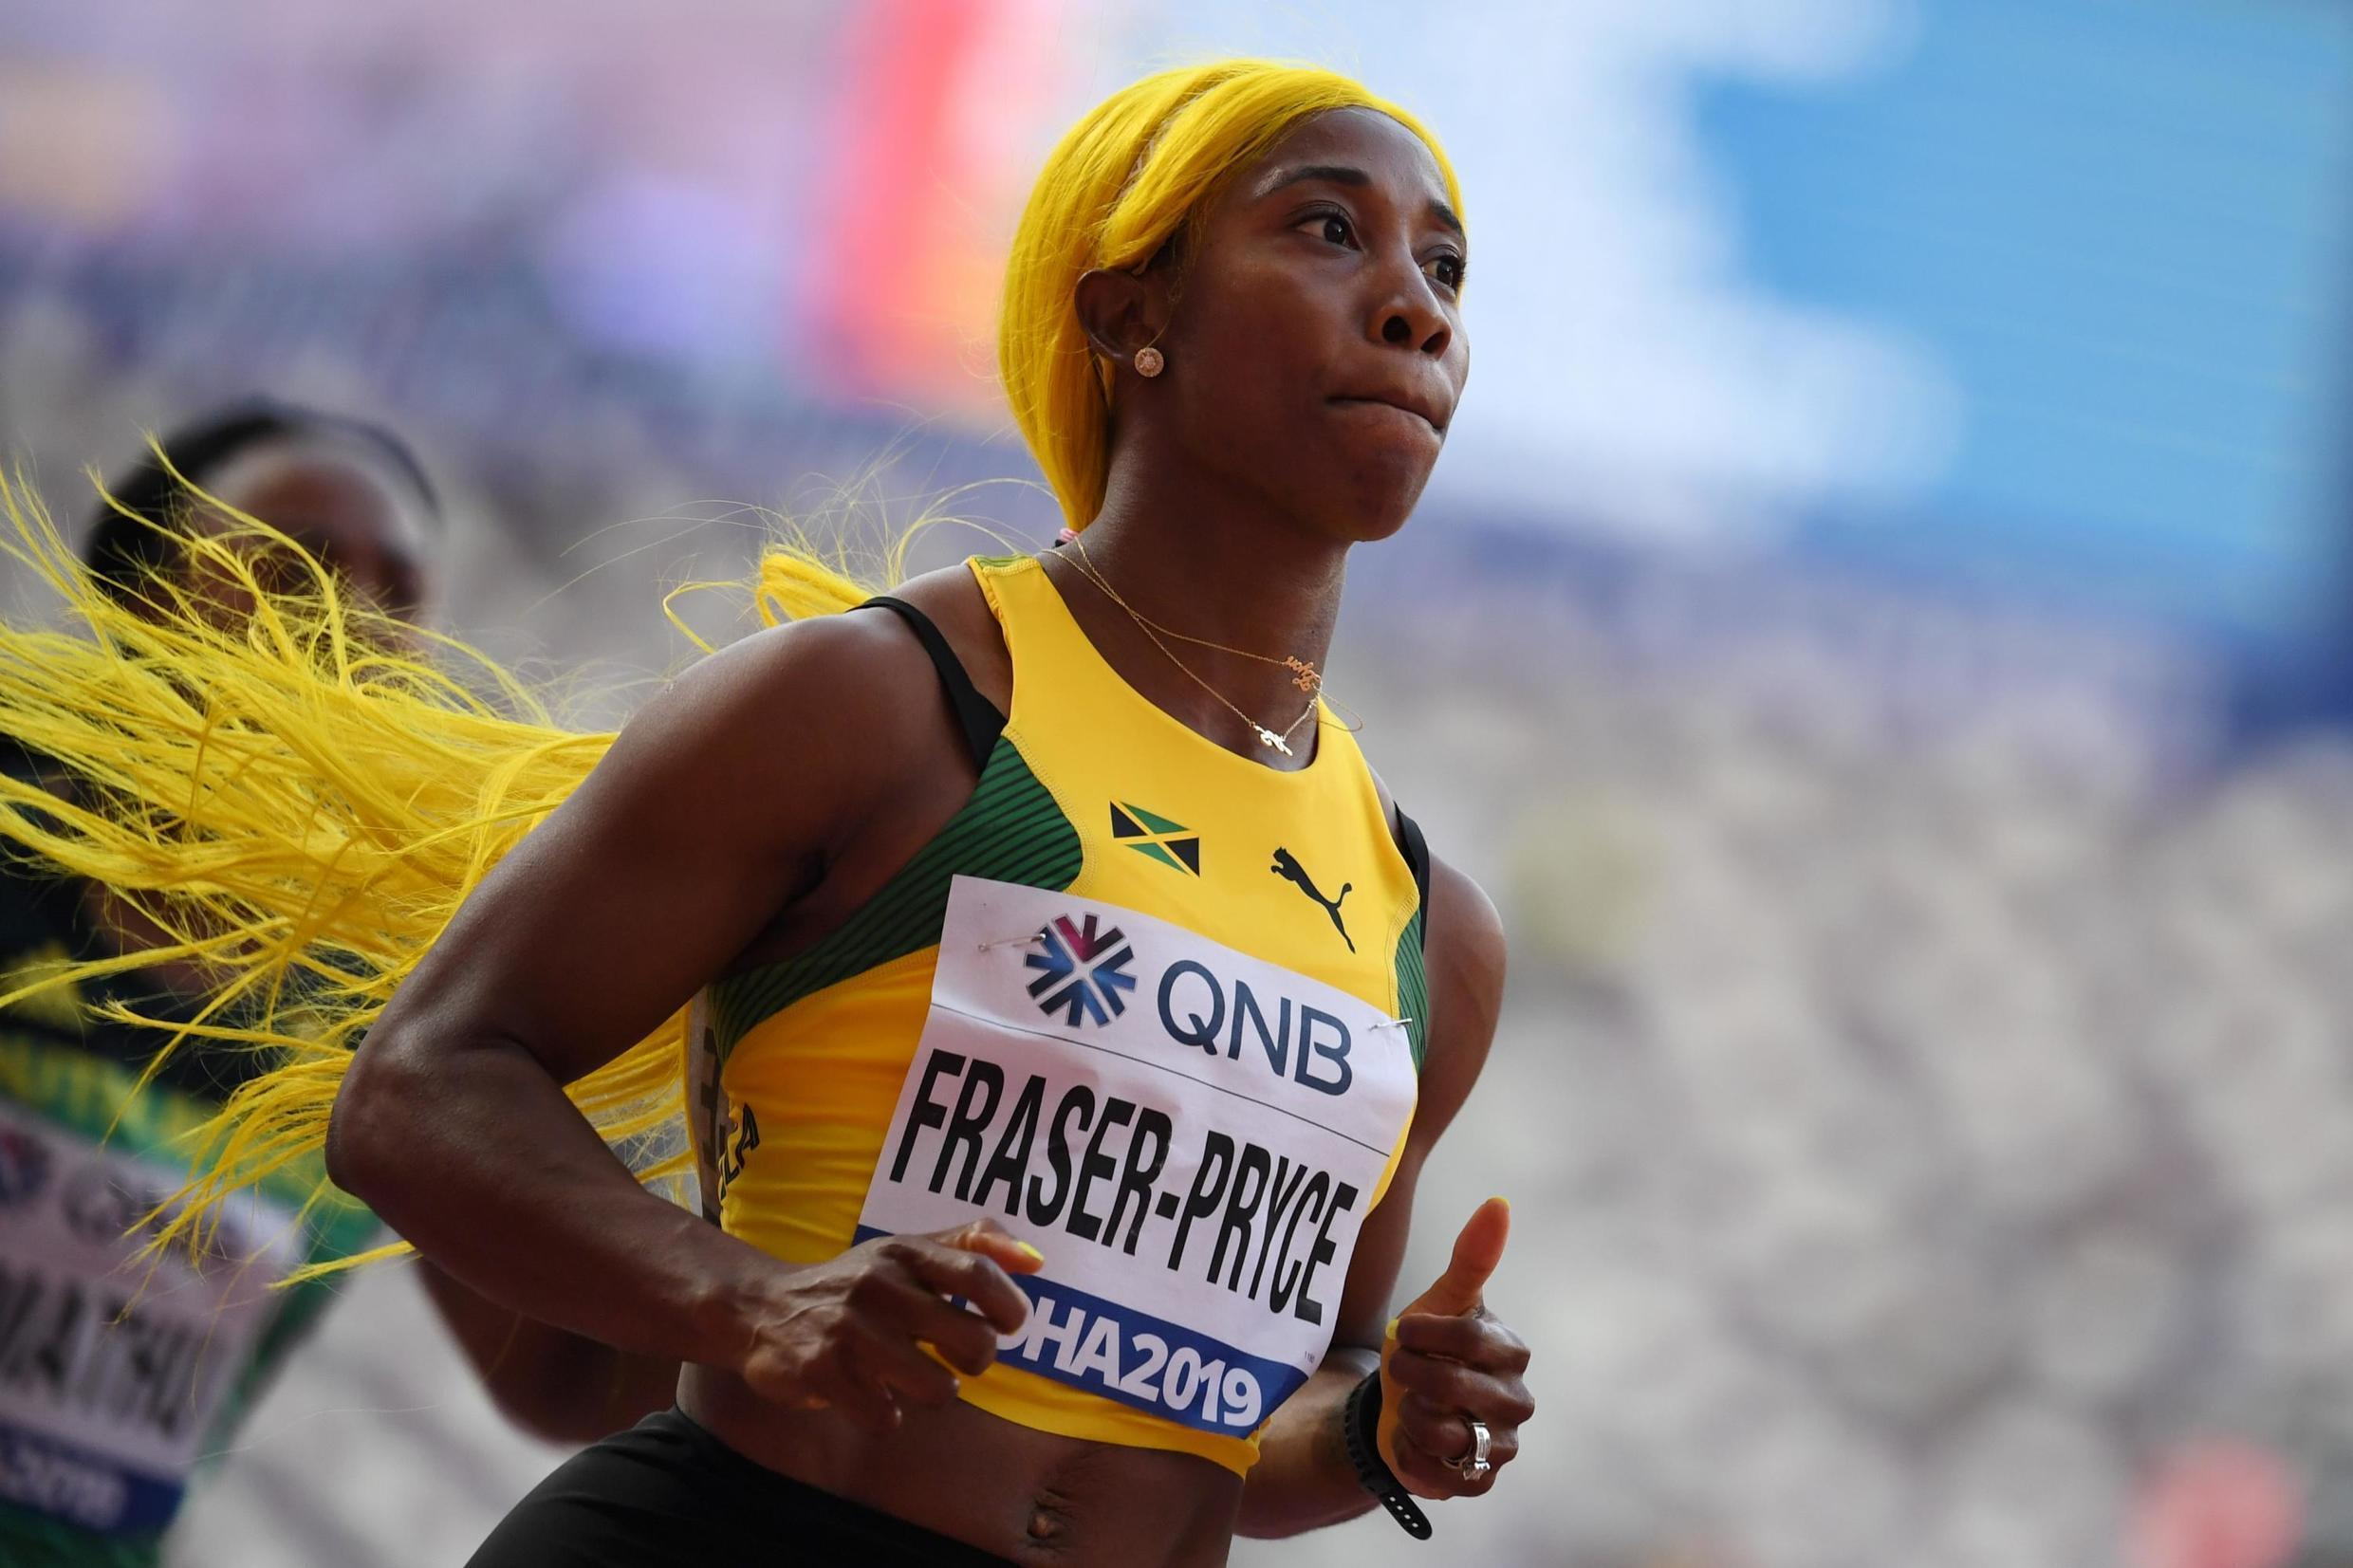 Shelly-Ann Fraser-Pryce ran the season's best time to win the gold medal in the 100 metres.